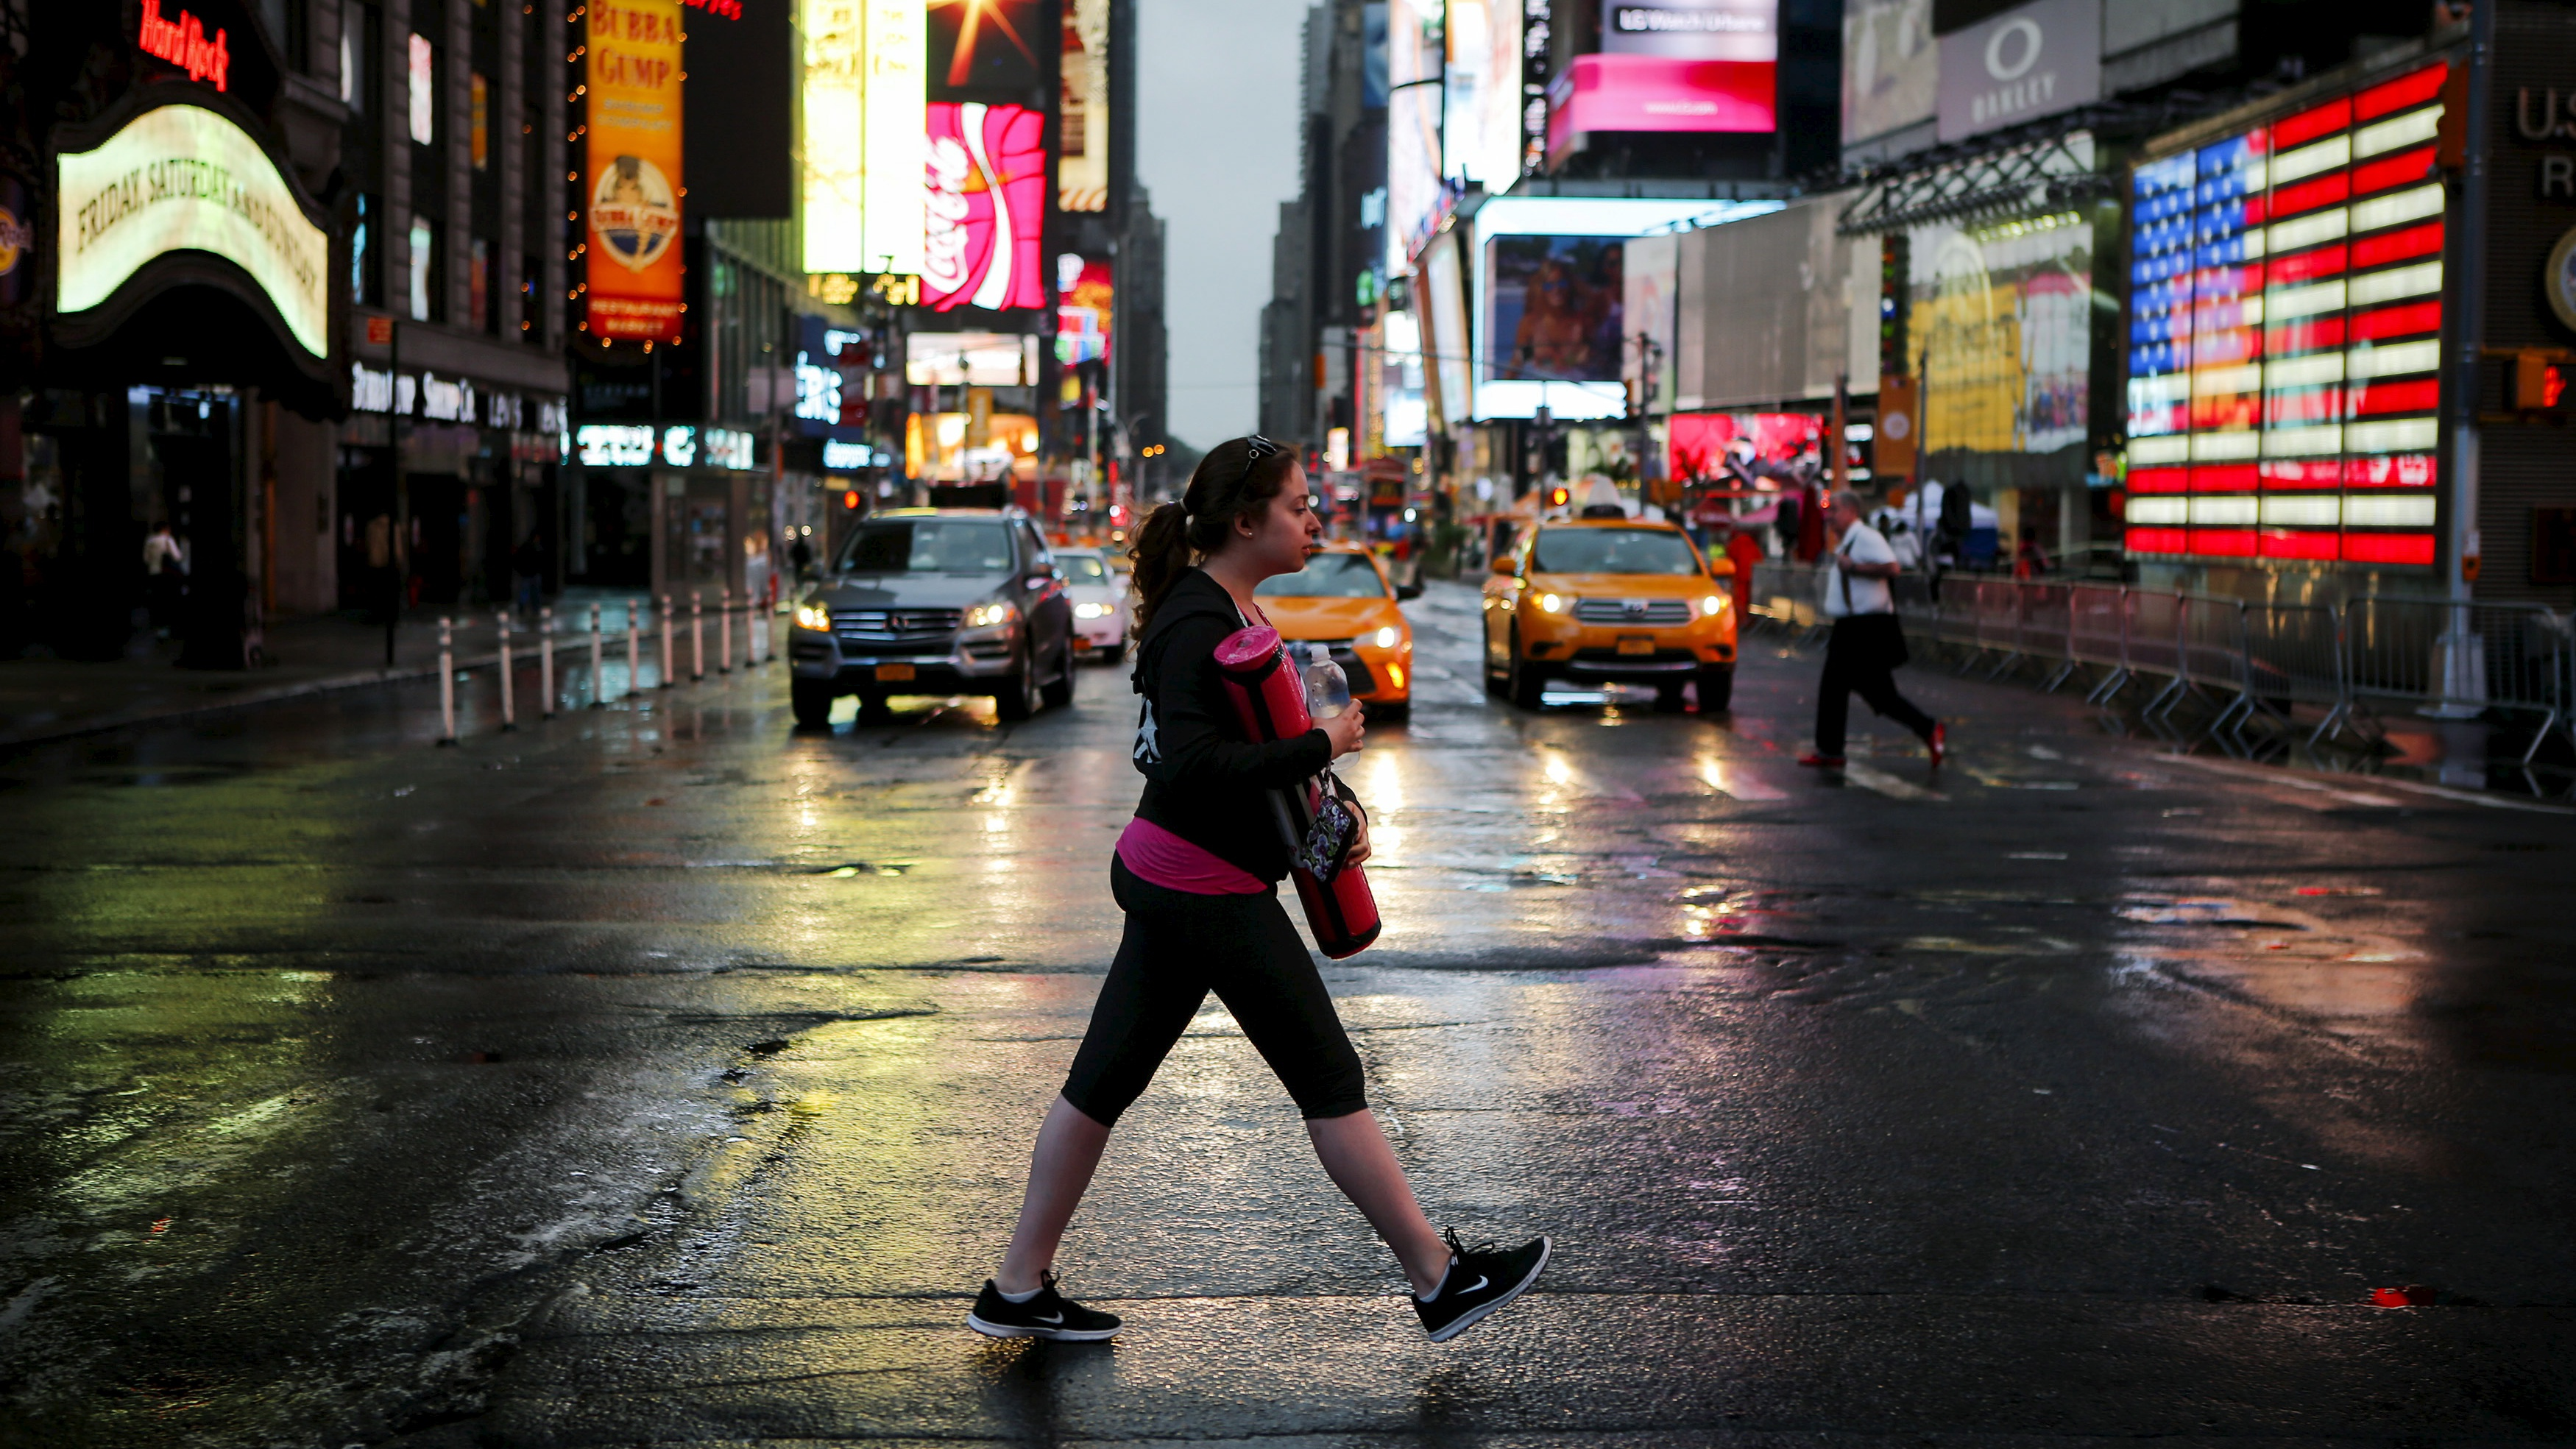 A woman arrives to practice yoga in Times Square as part of a Summer Solstice and International Day of Yoga celebration in New York June 21, 2015.